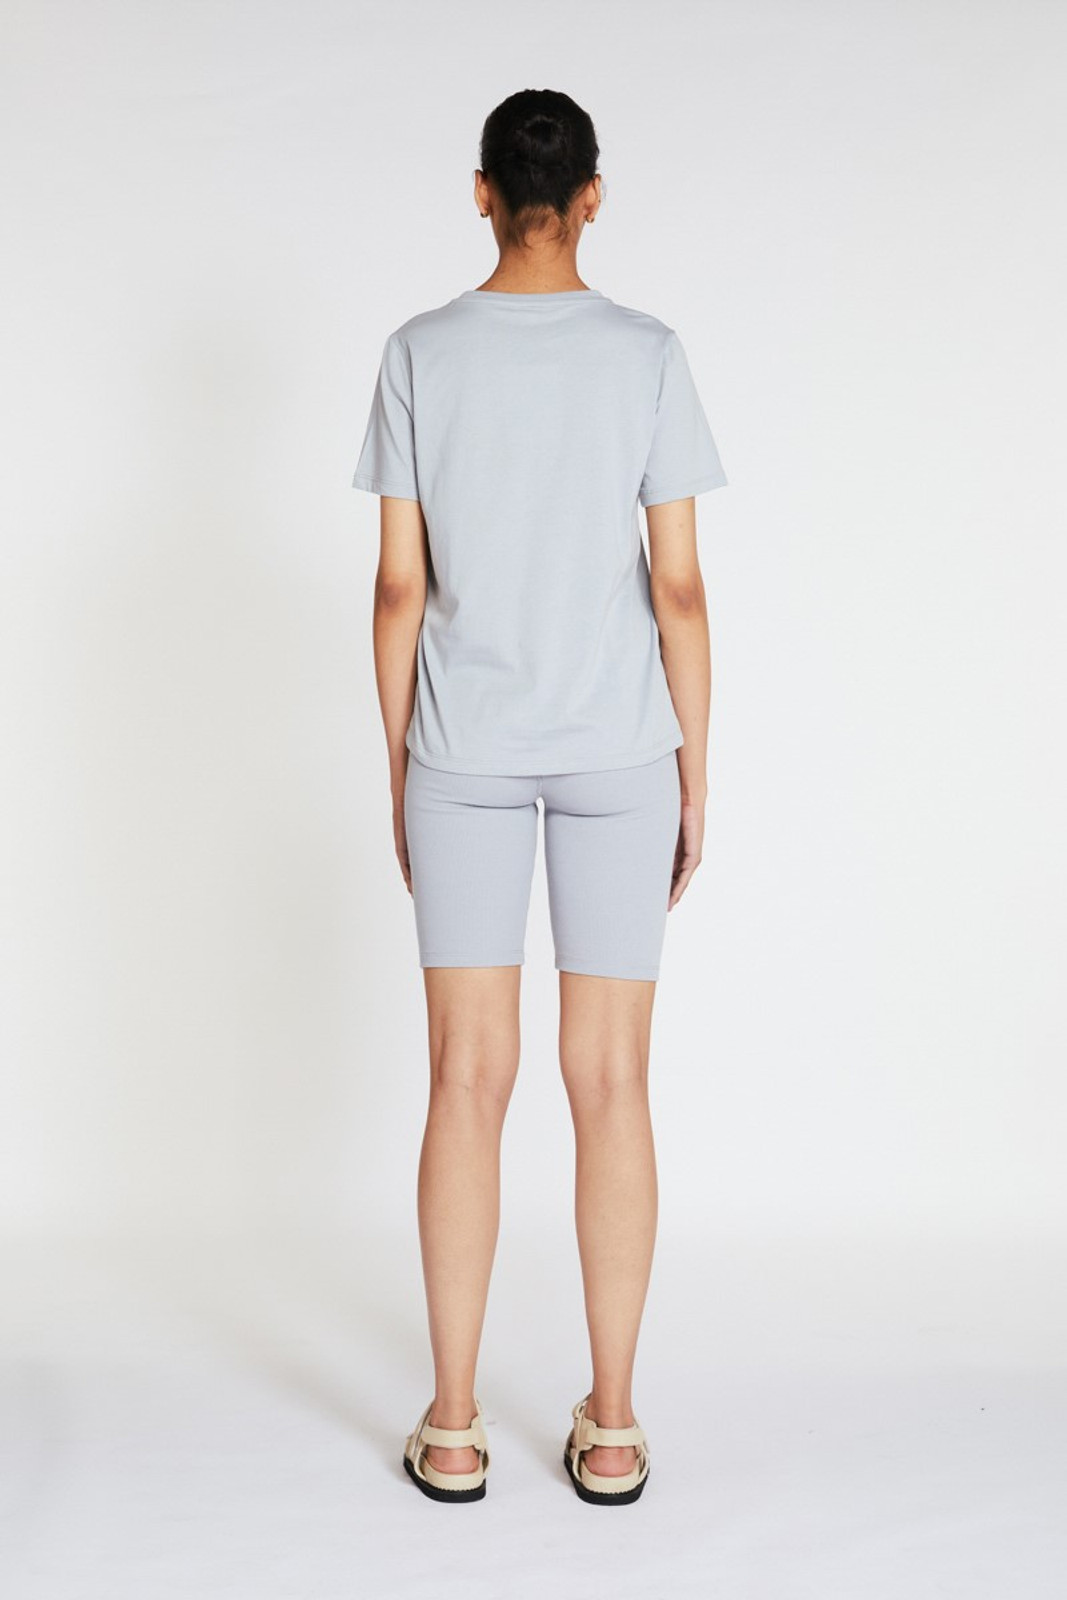 Elka Collective Trademark Tee Blue  2